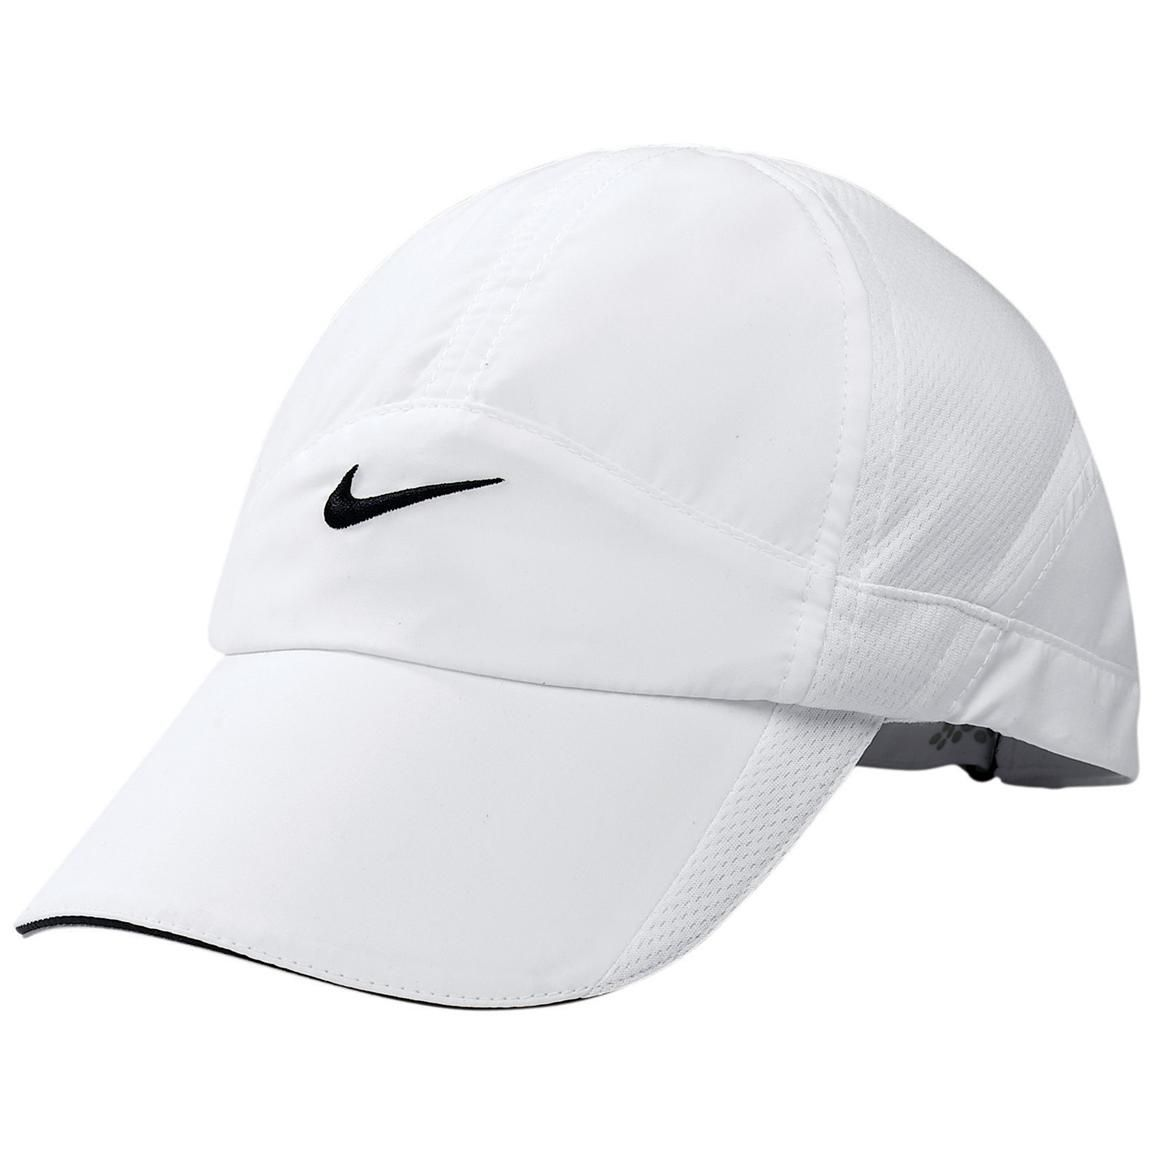 Nike Hats for Women  4bd227db0f4